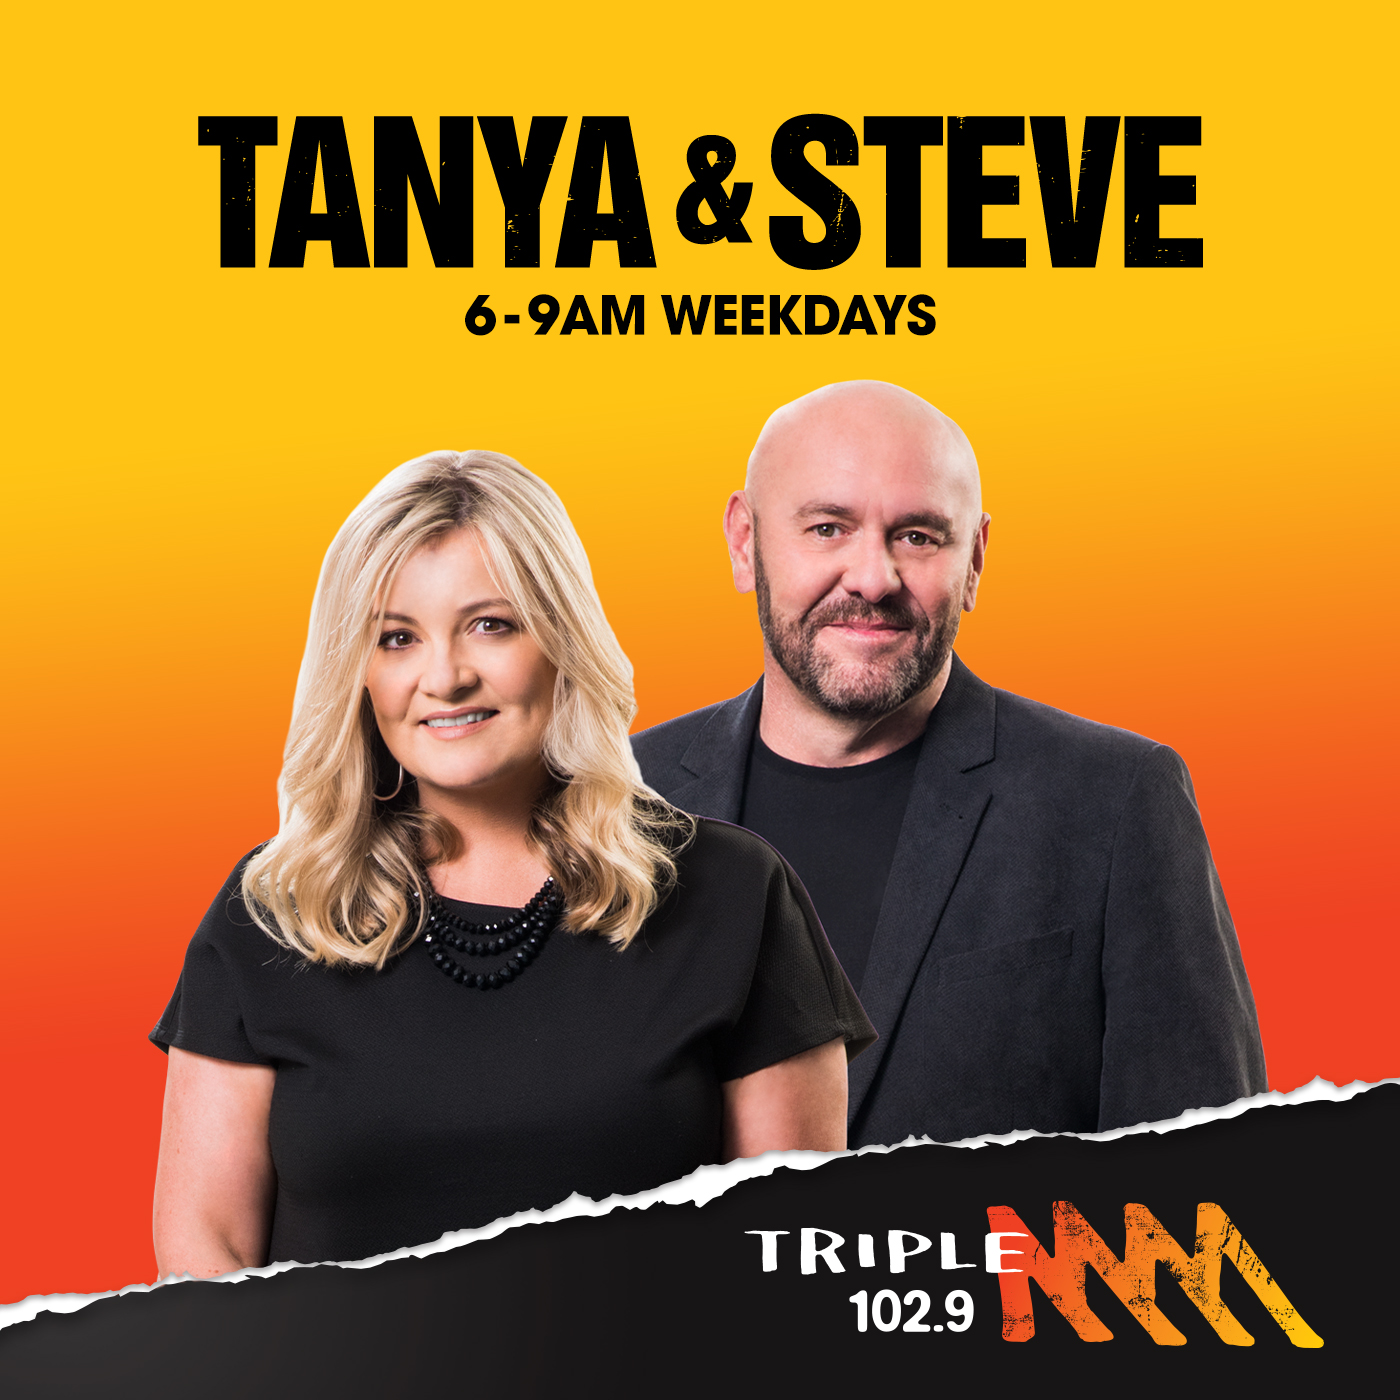 Tanya & Steve for Breakfast - KOFM Newcastle